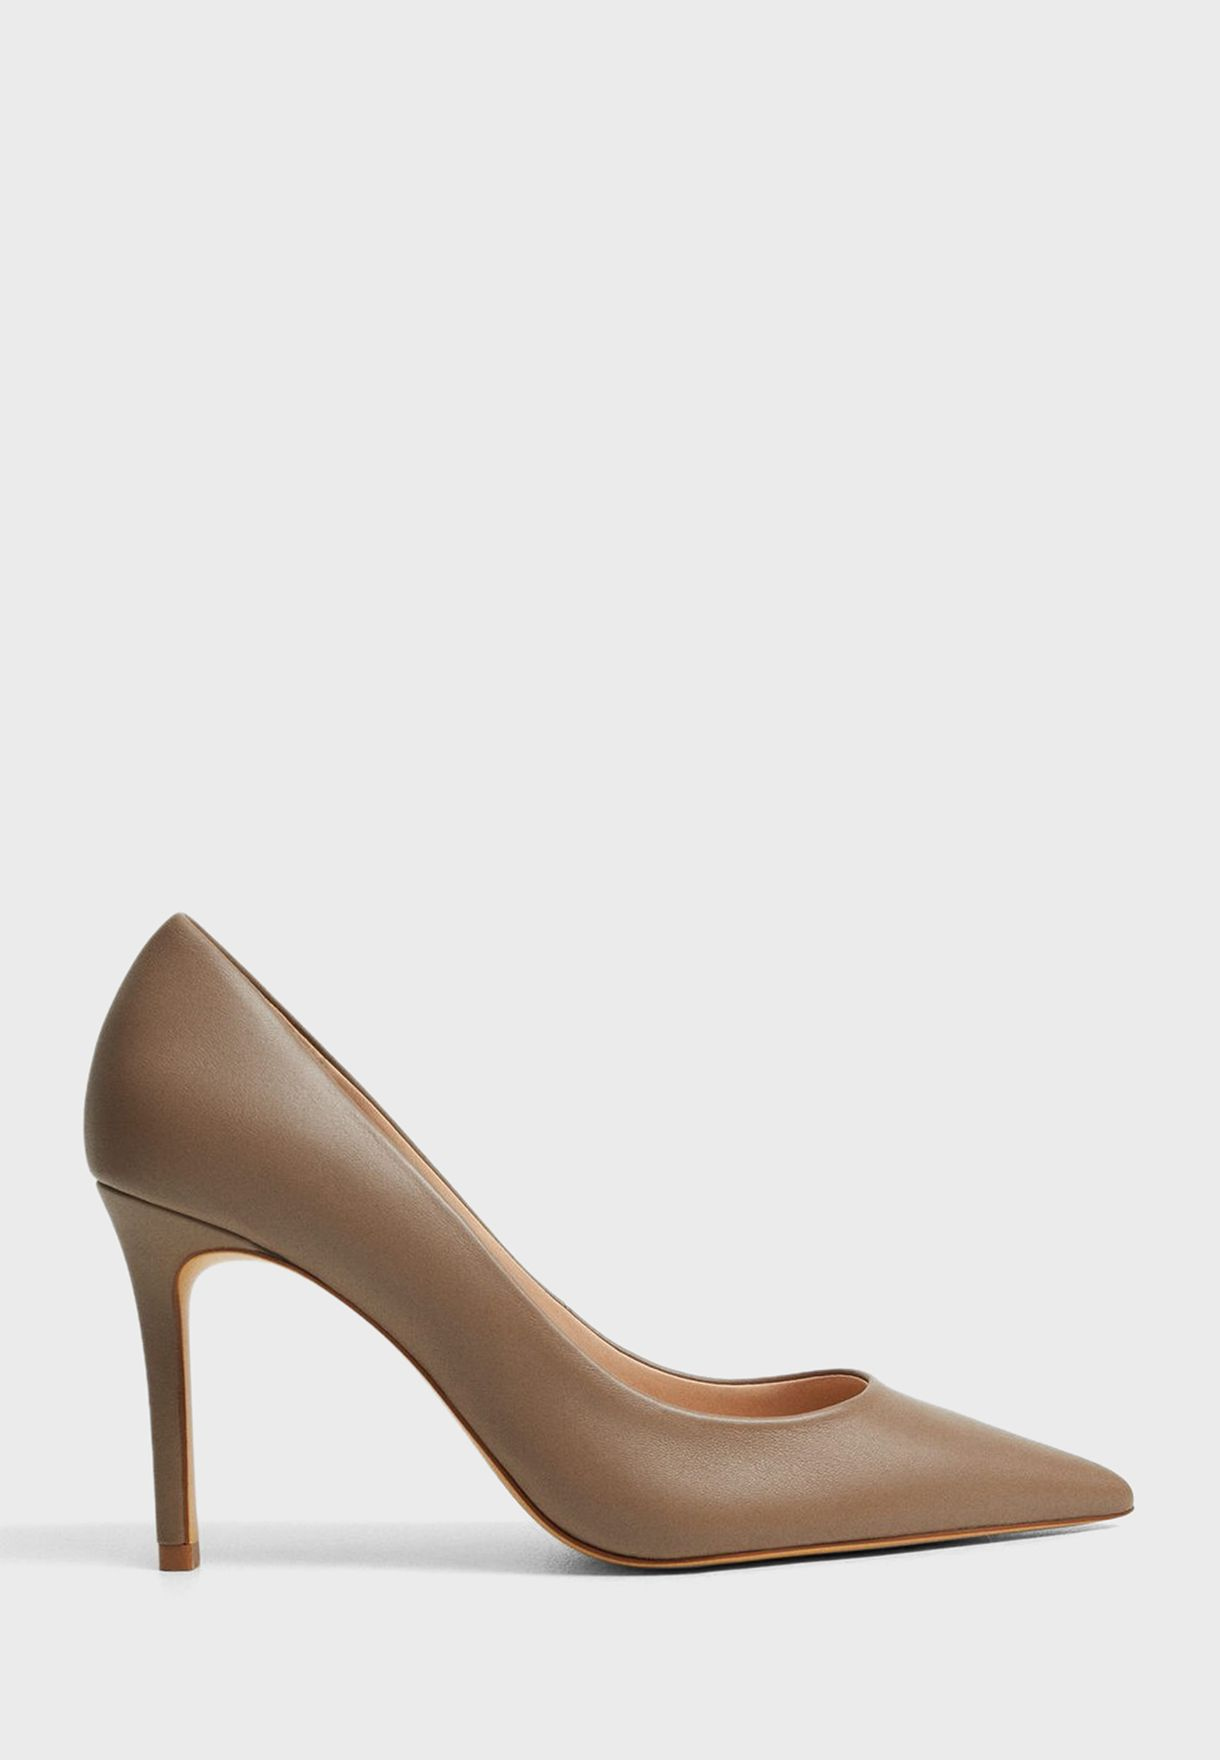 Roca High Heel Pump